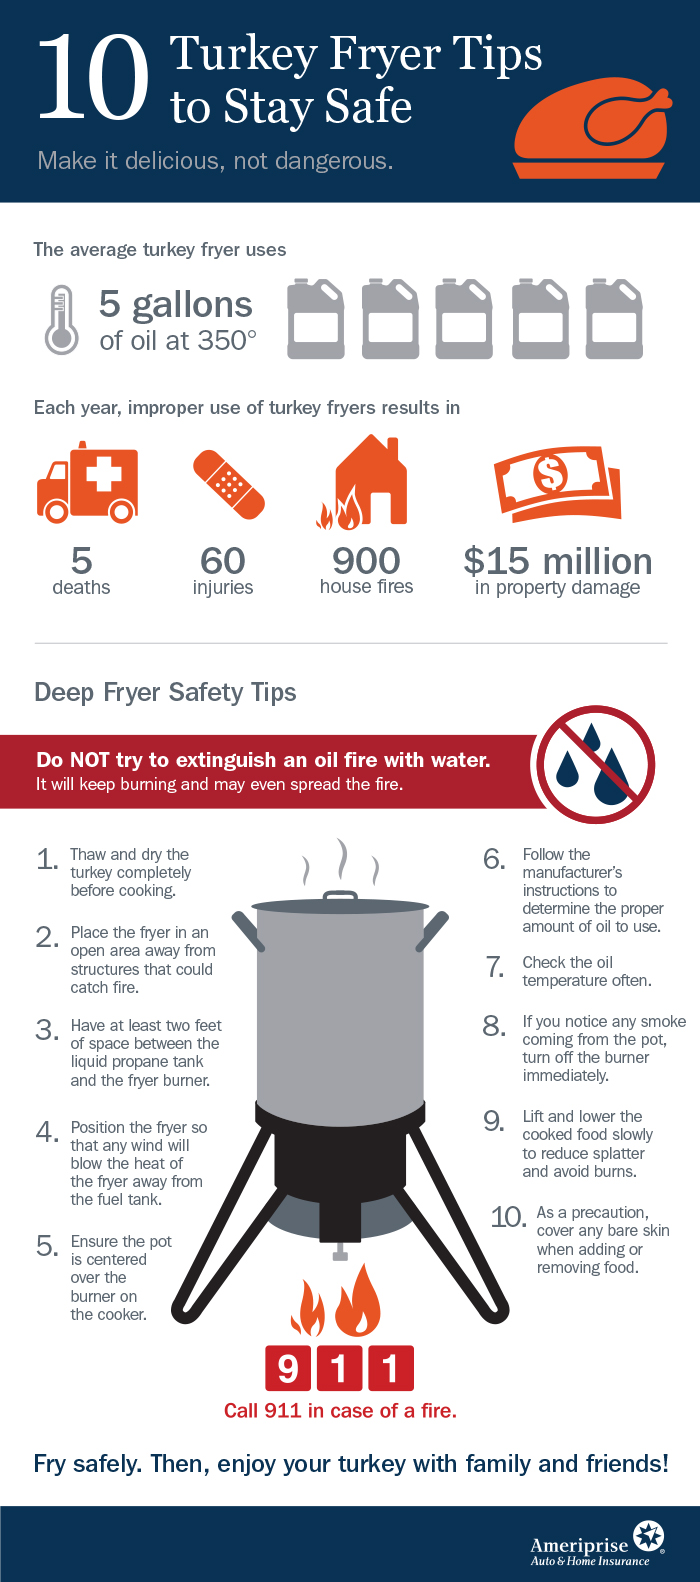 10 Tips for Turkey Frying